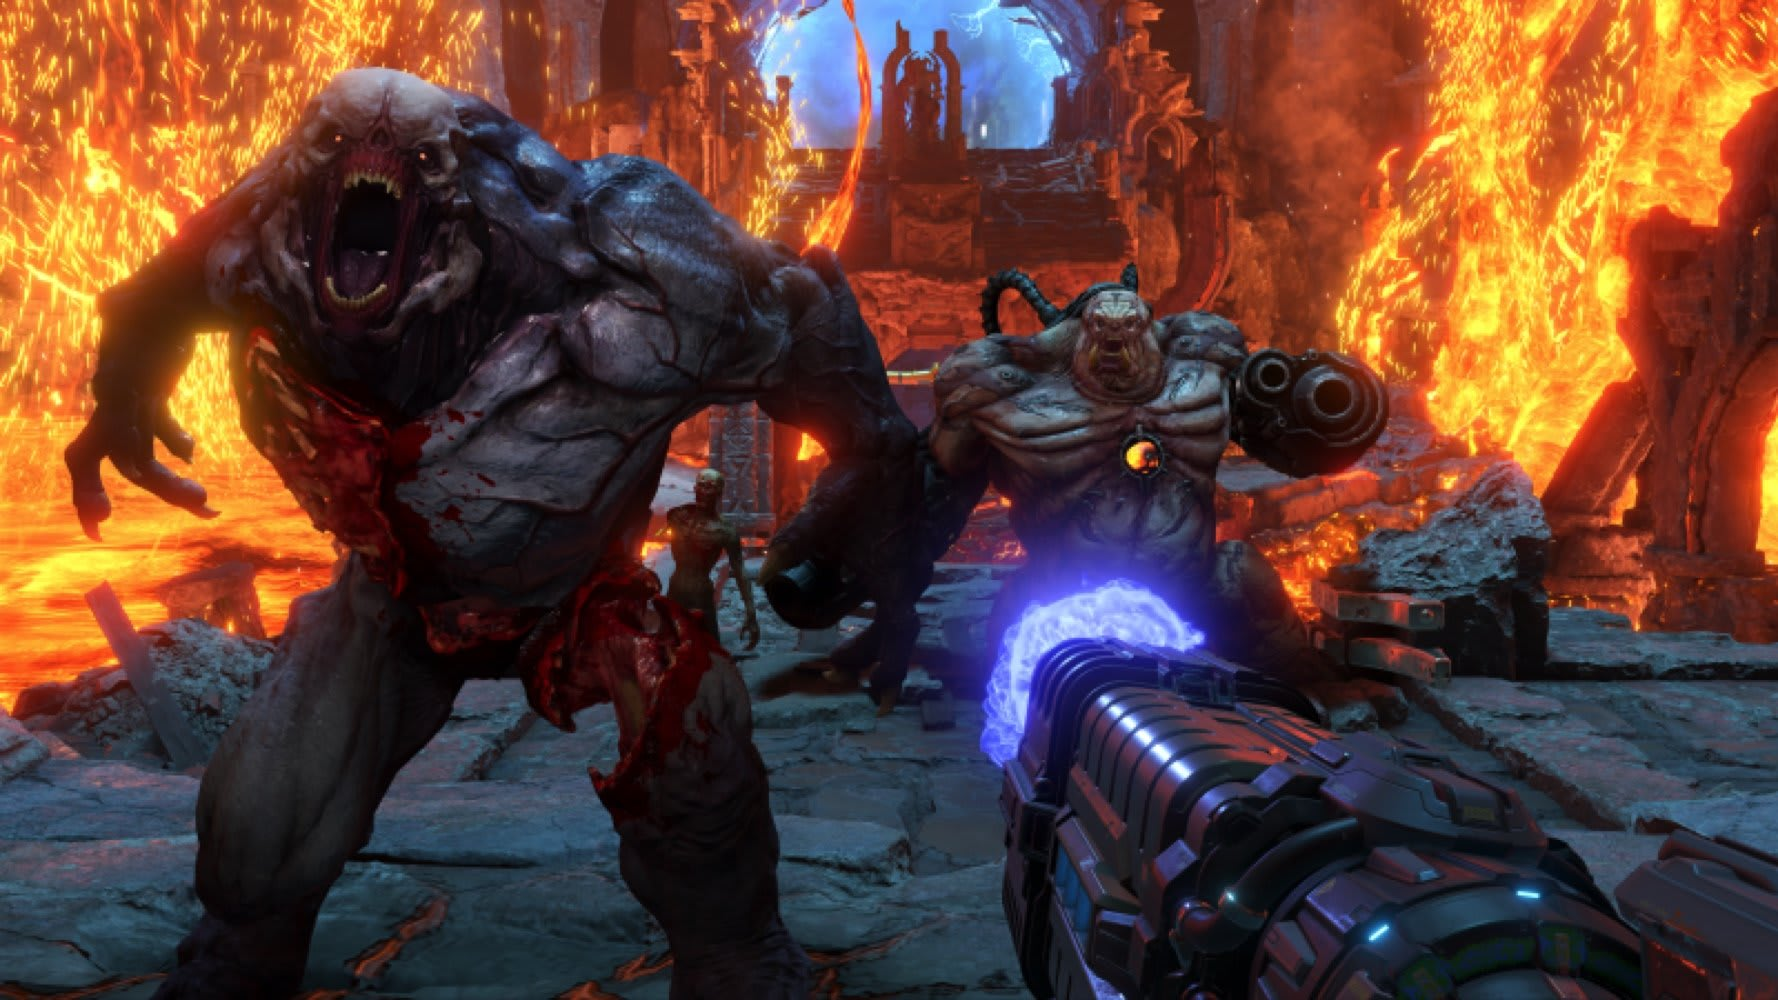 Xbox Free Games November 2020.Doom Eternal Is Delayed To March 2020 Engadget